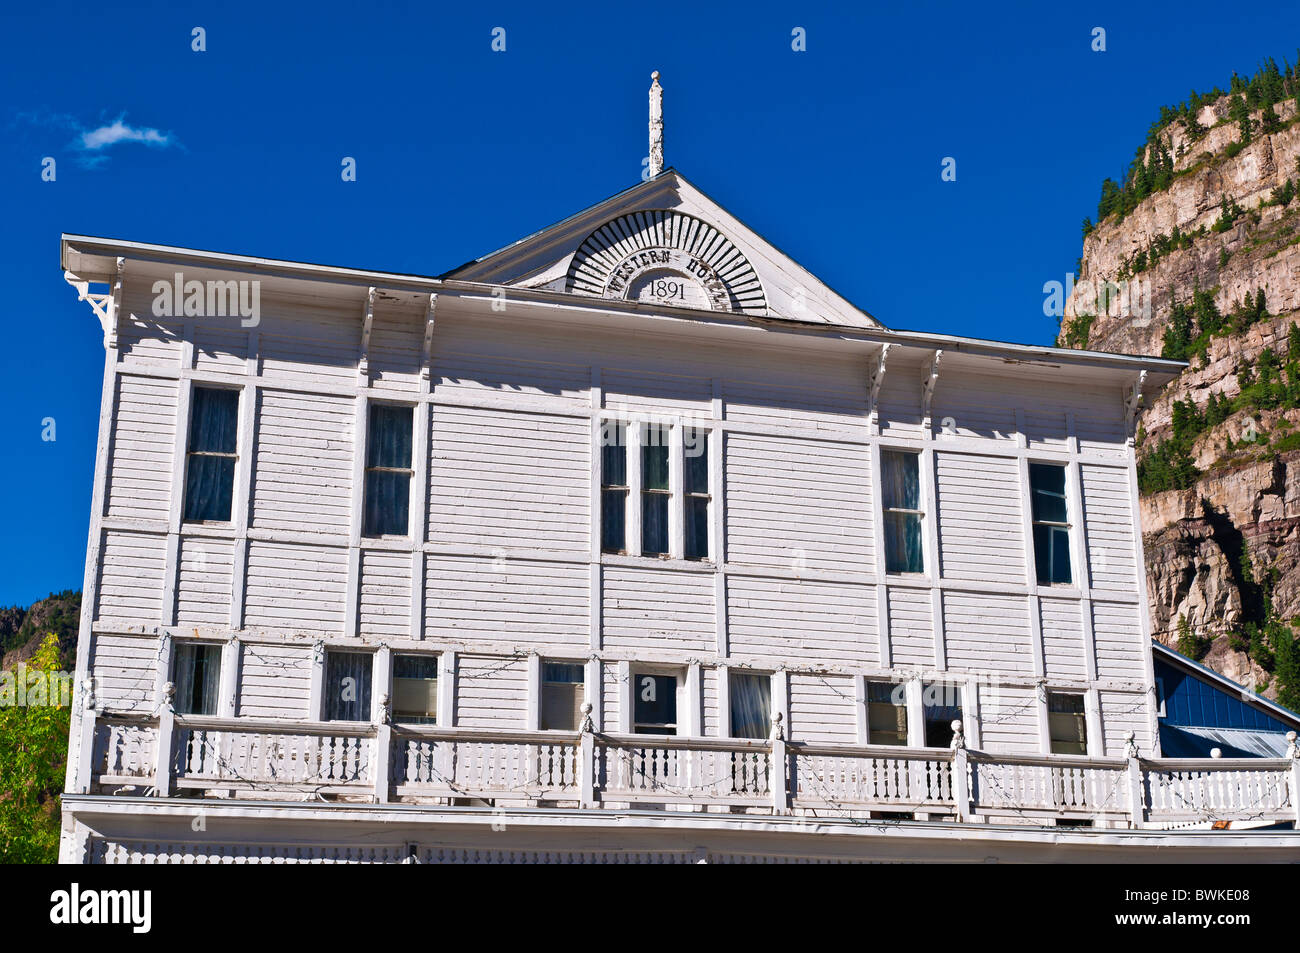 The historic Western Hotel, Ouray, Colorado - Stock Image